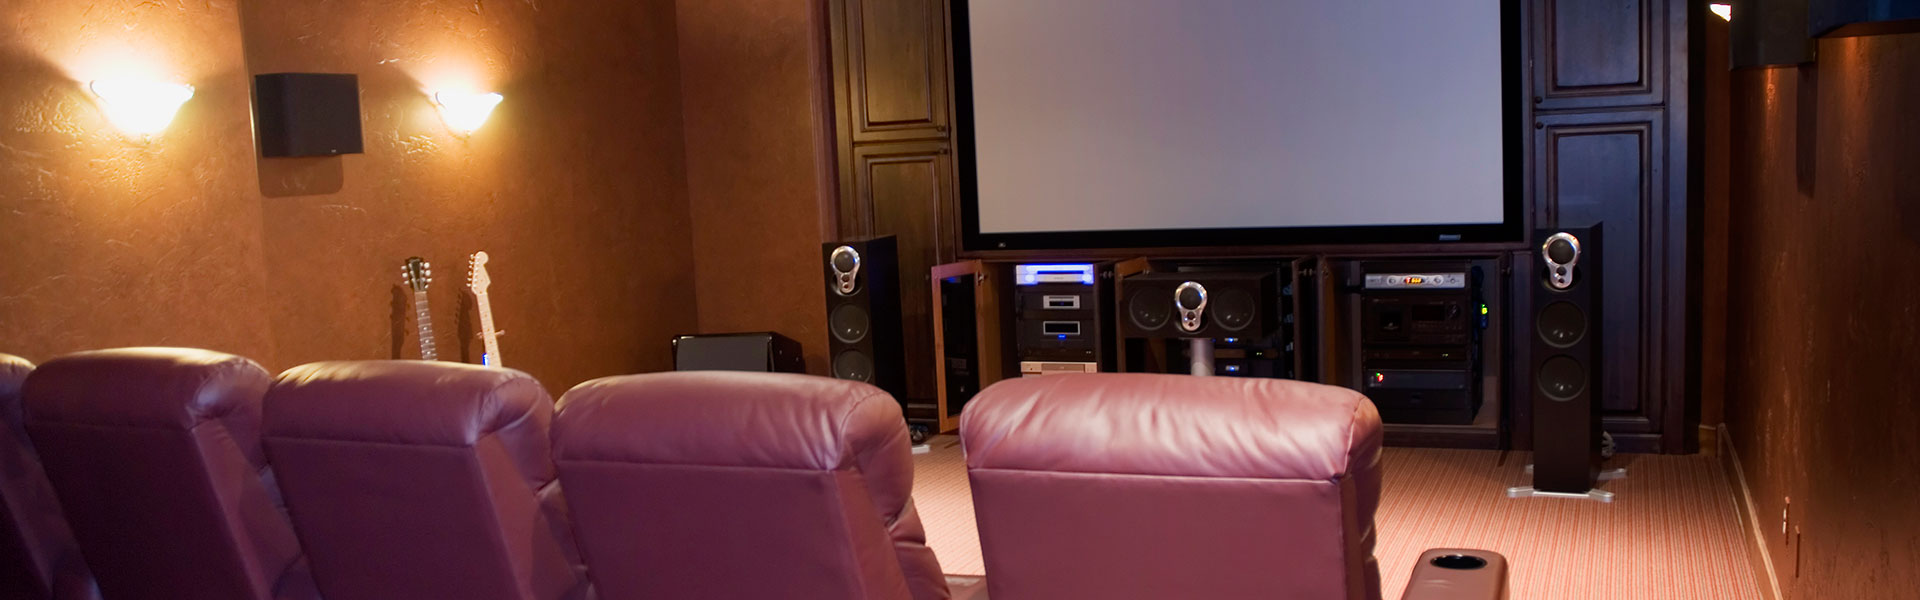 <h3>Why You Need a Professional for Home Theatre Installation</h3>